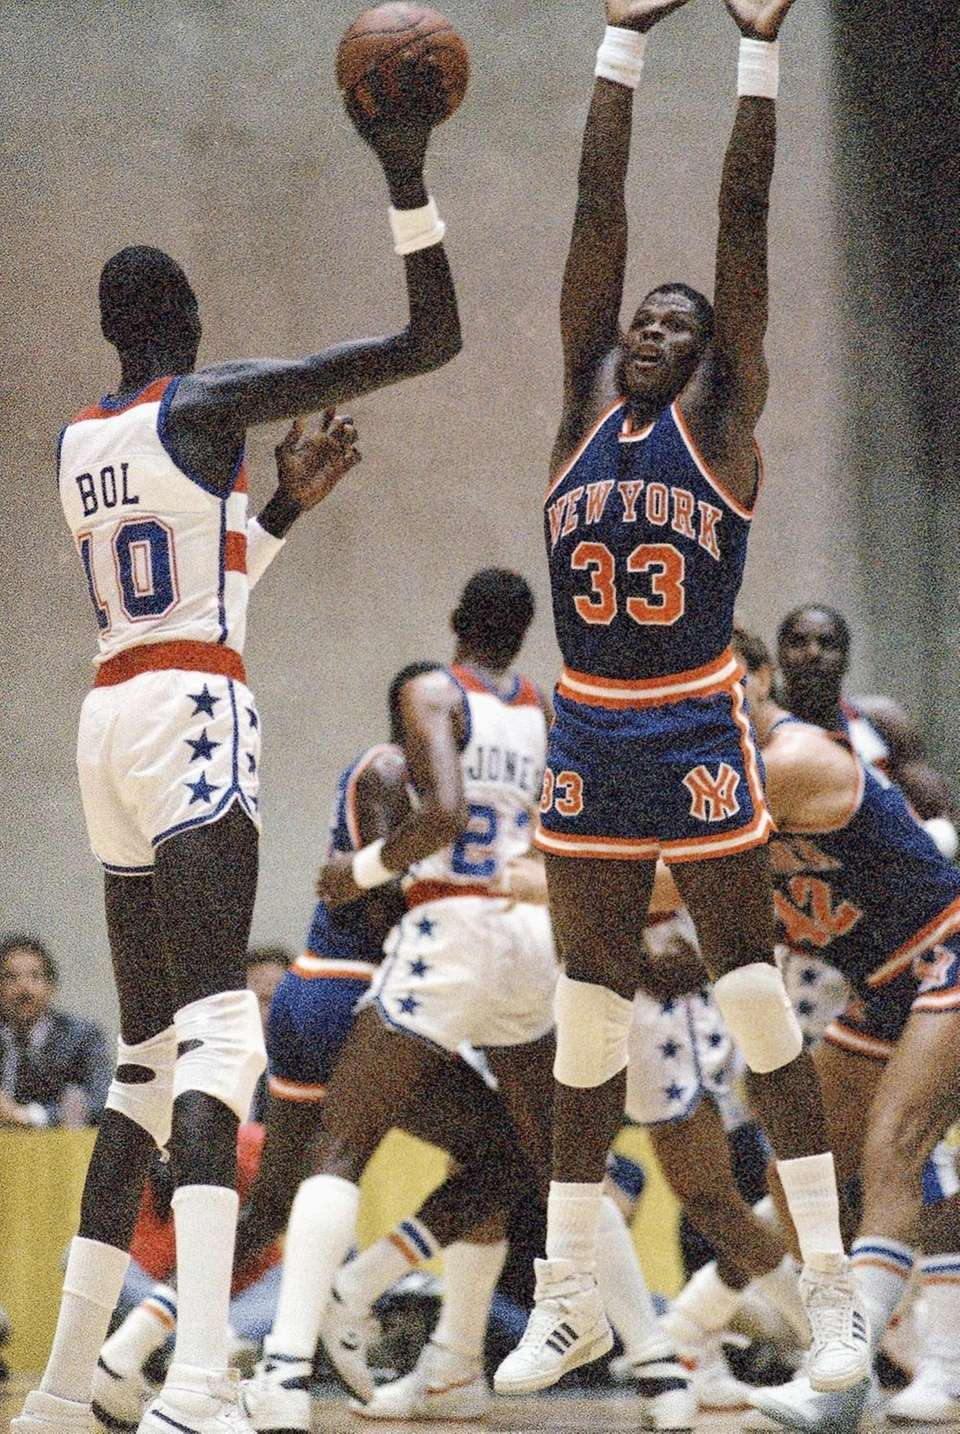 1983-87 road jerseys